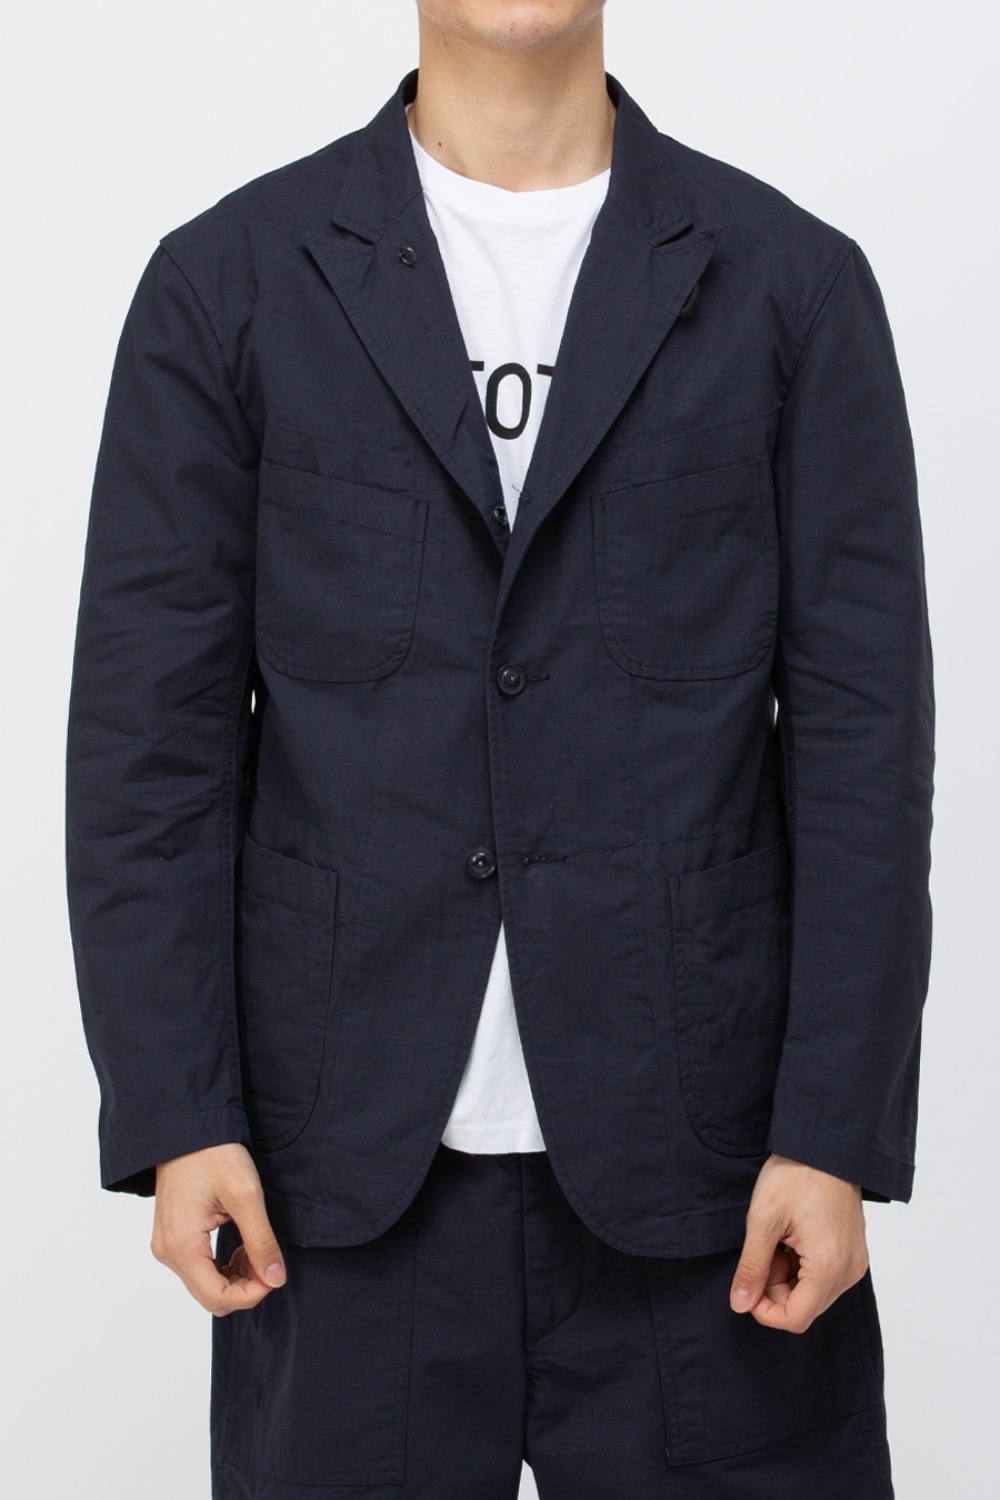 BEDFORD JACKET COTTON RIPSTOP DARK NAVY